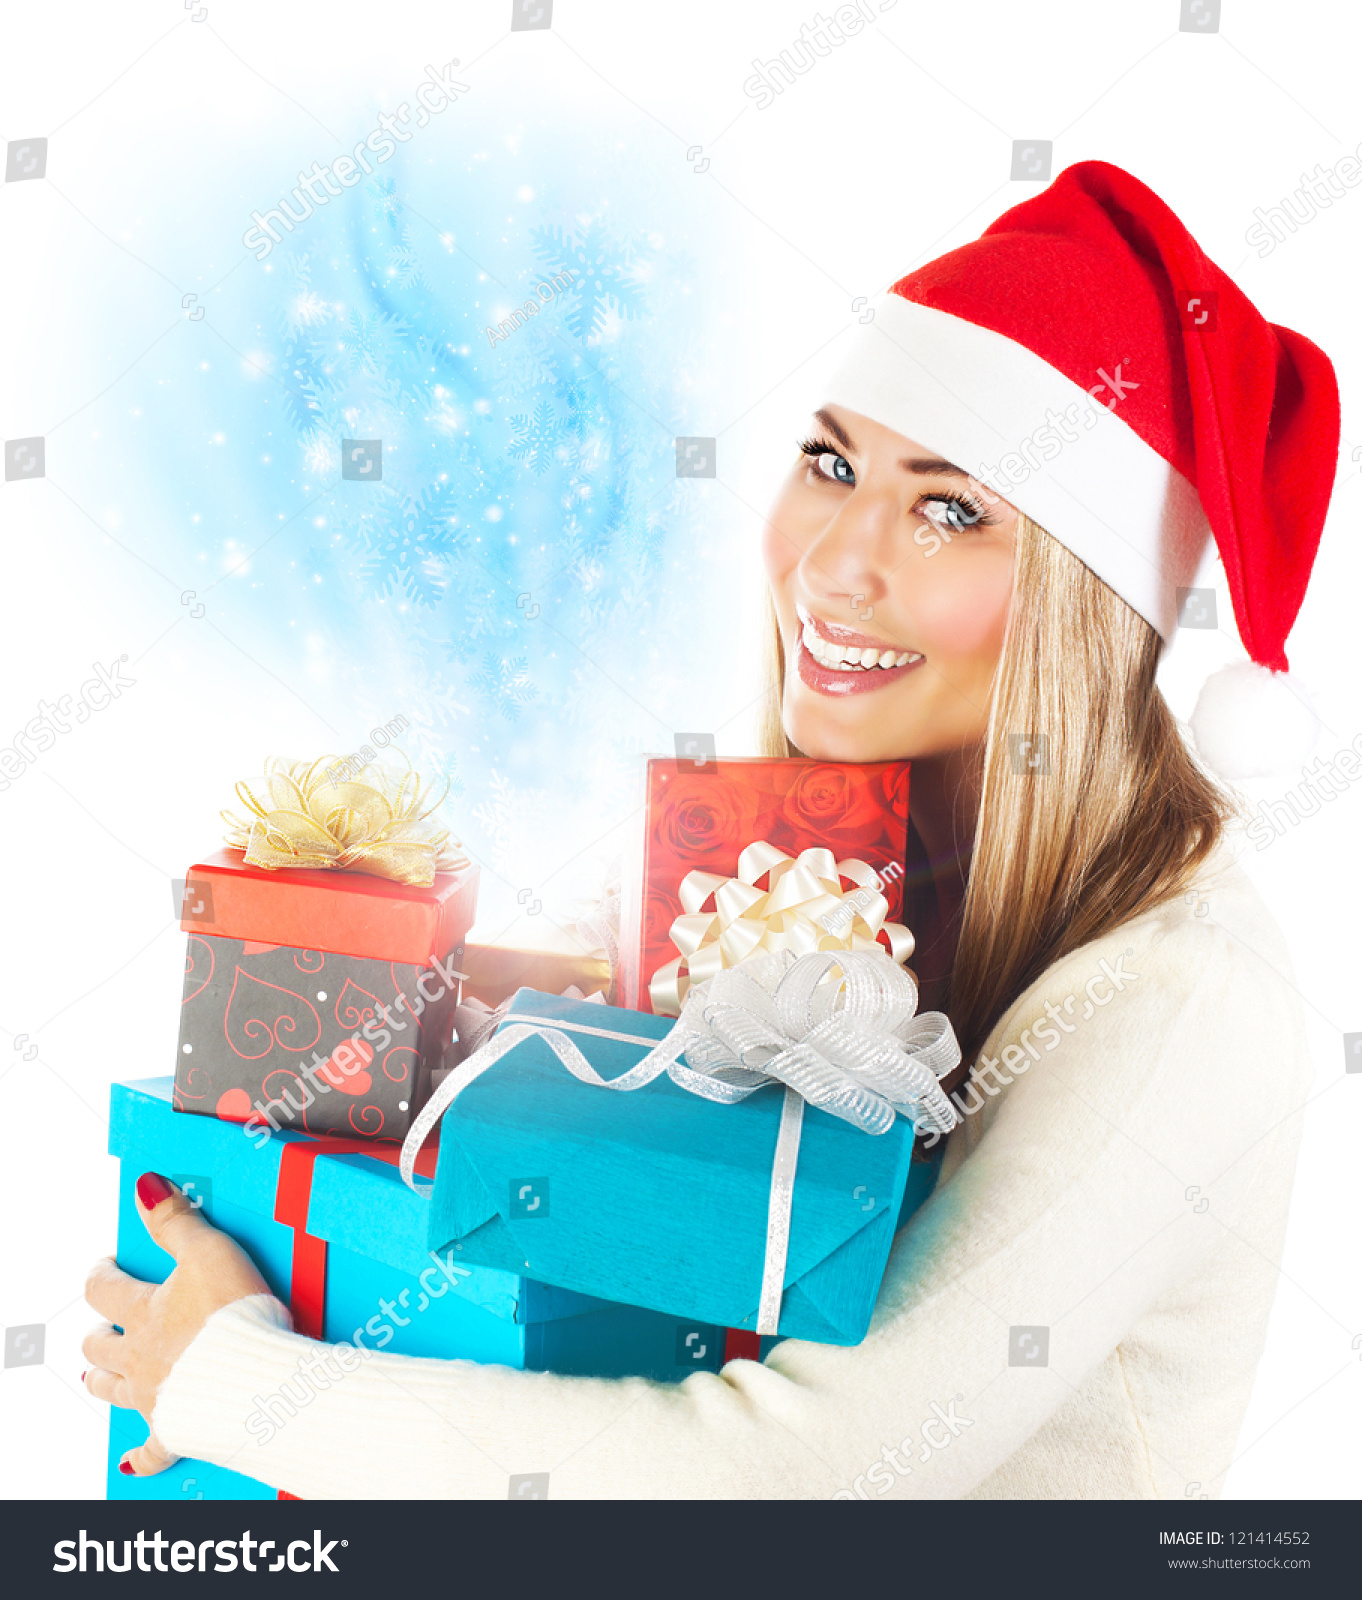 Photo Of Pretty Santa Claus Woman, Wearing Red Hat